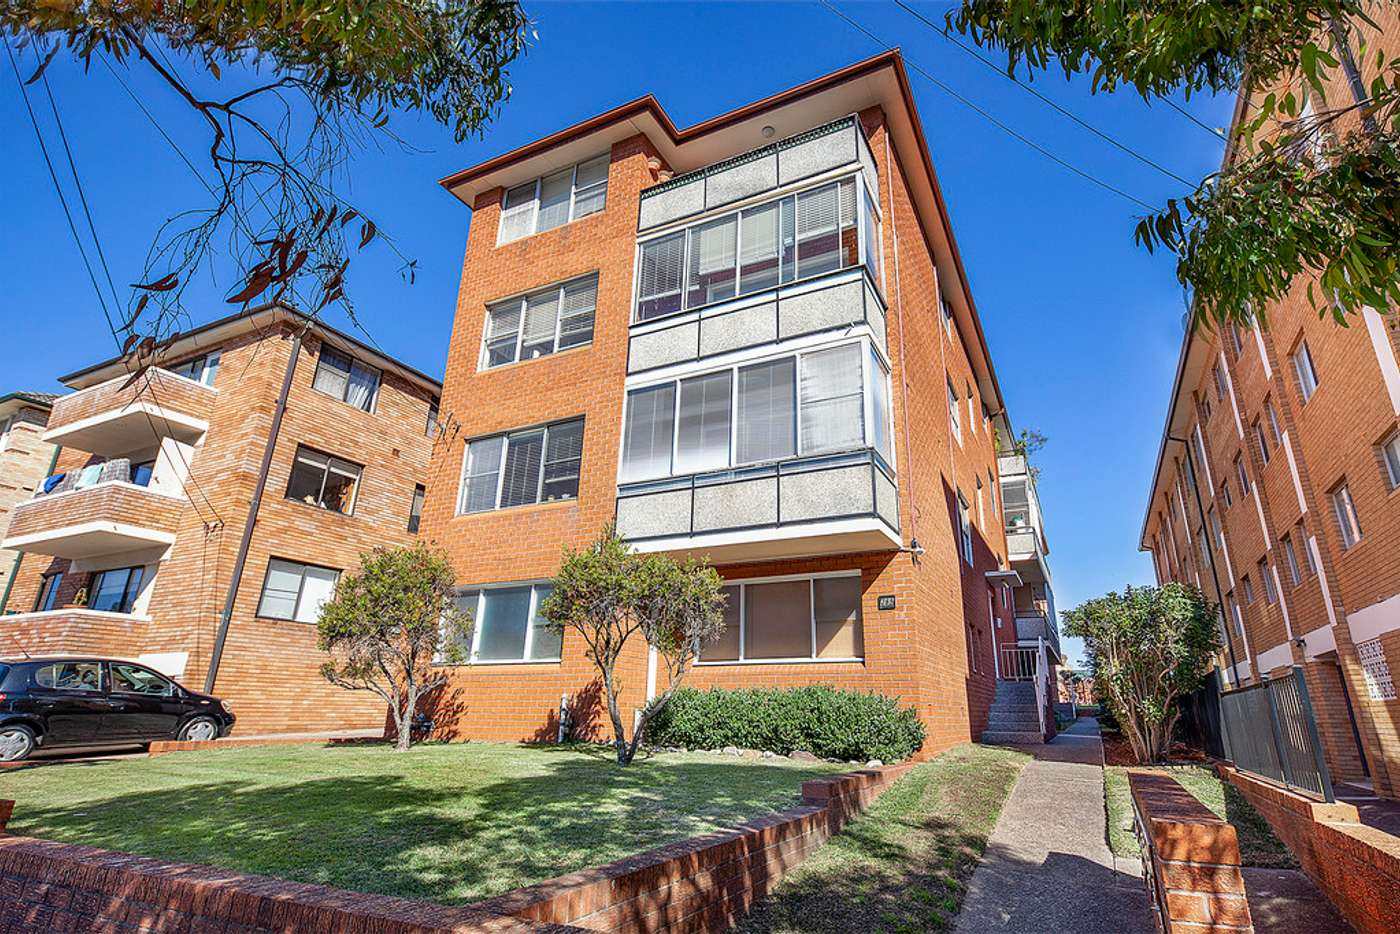 Main view of Homely apartment listing, 12/285 MAROUBRA ROAD, Maroubra NSW 2035